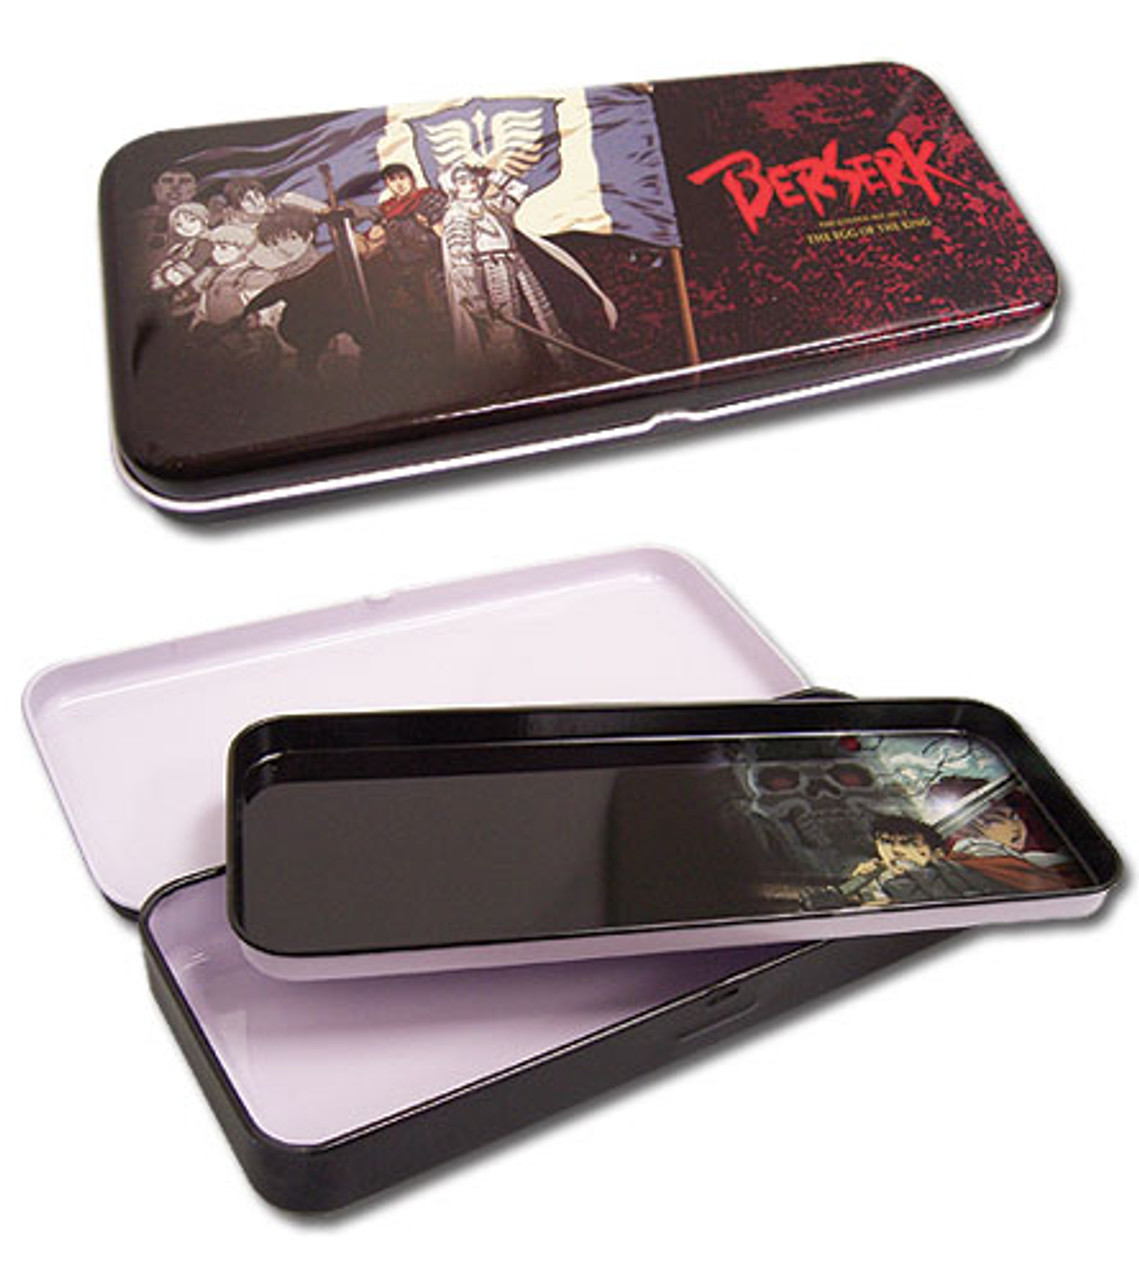 Berserk Band Of The Hawk Tin Pencil Case 4901518BAS